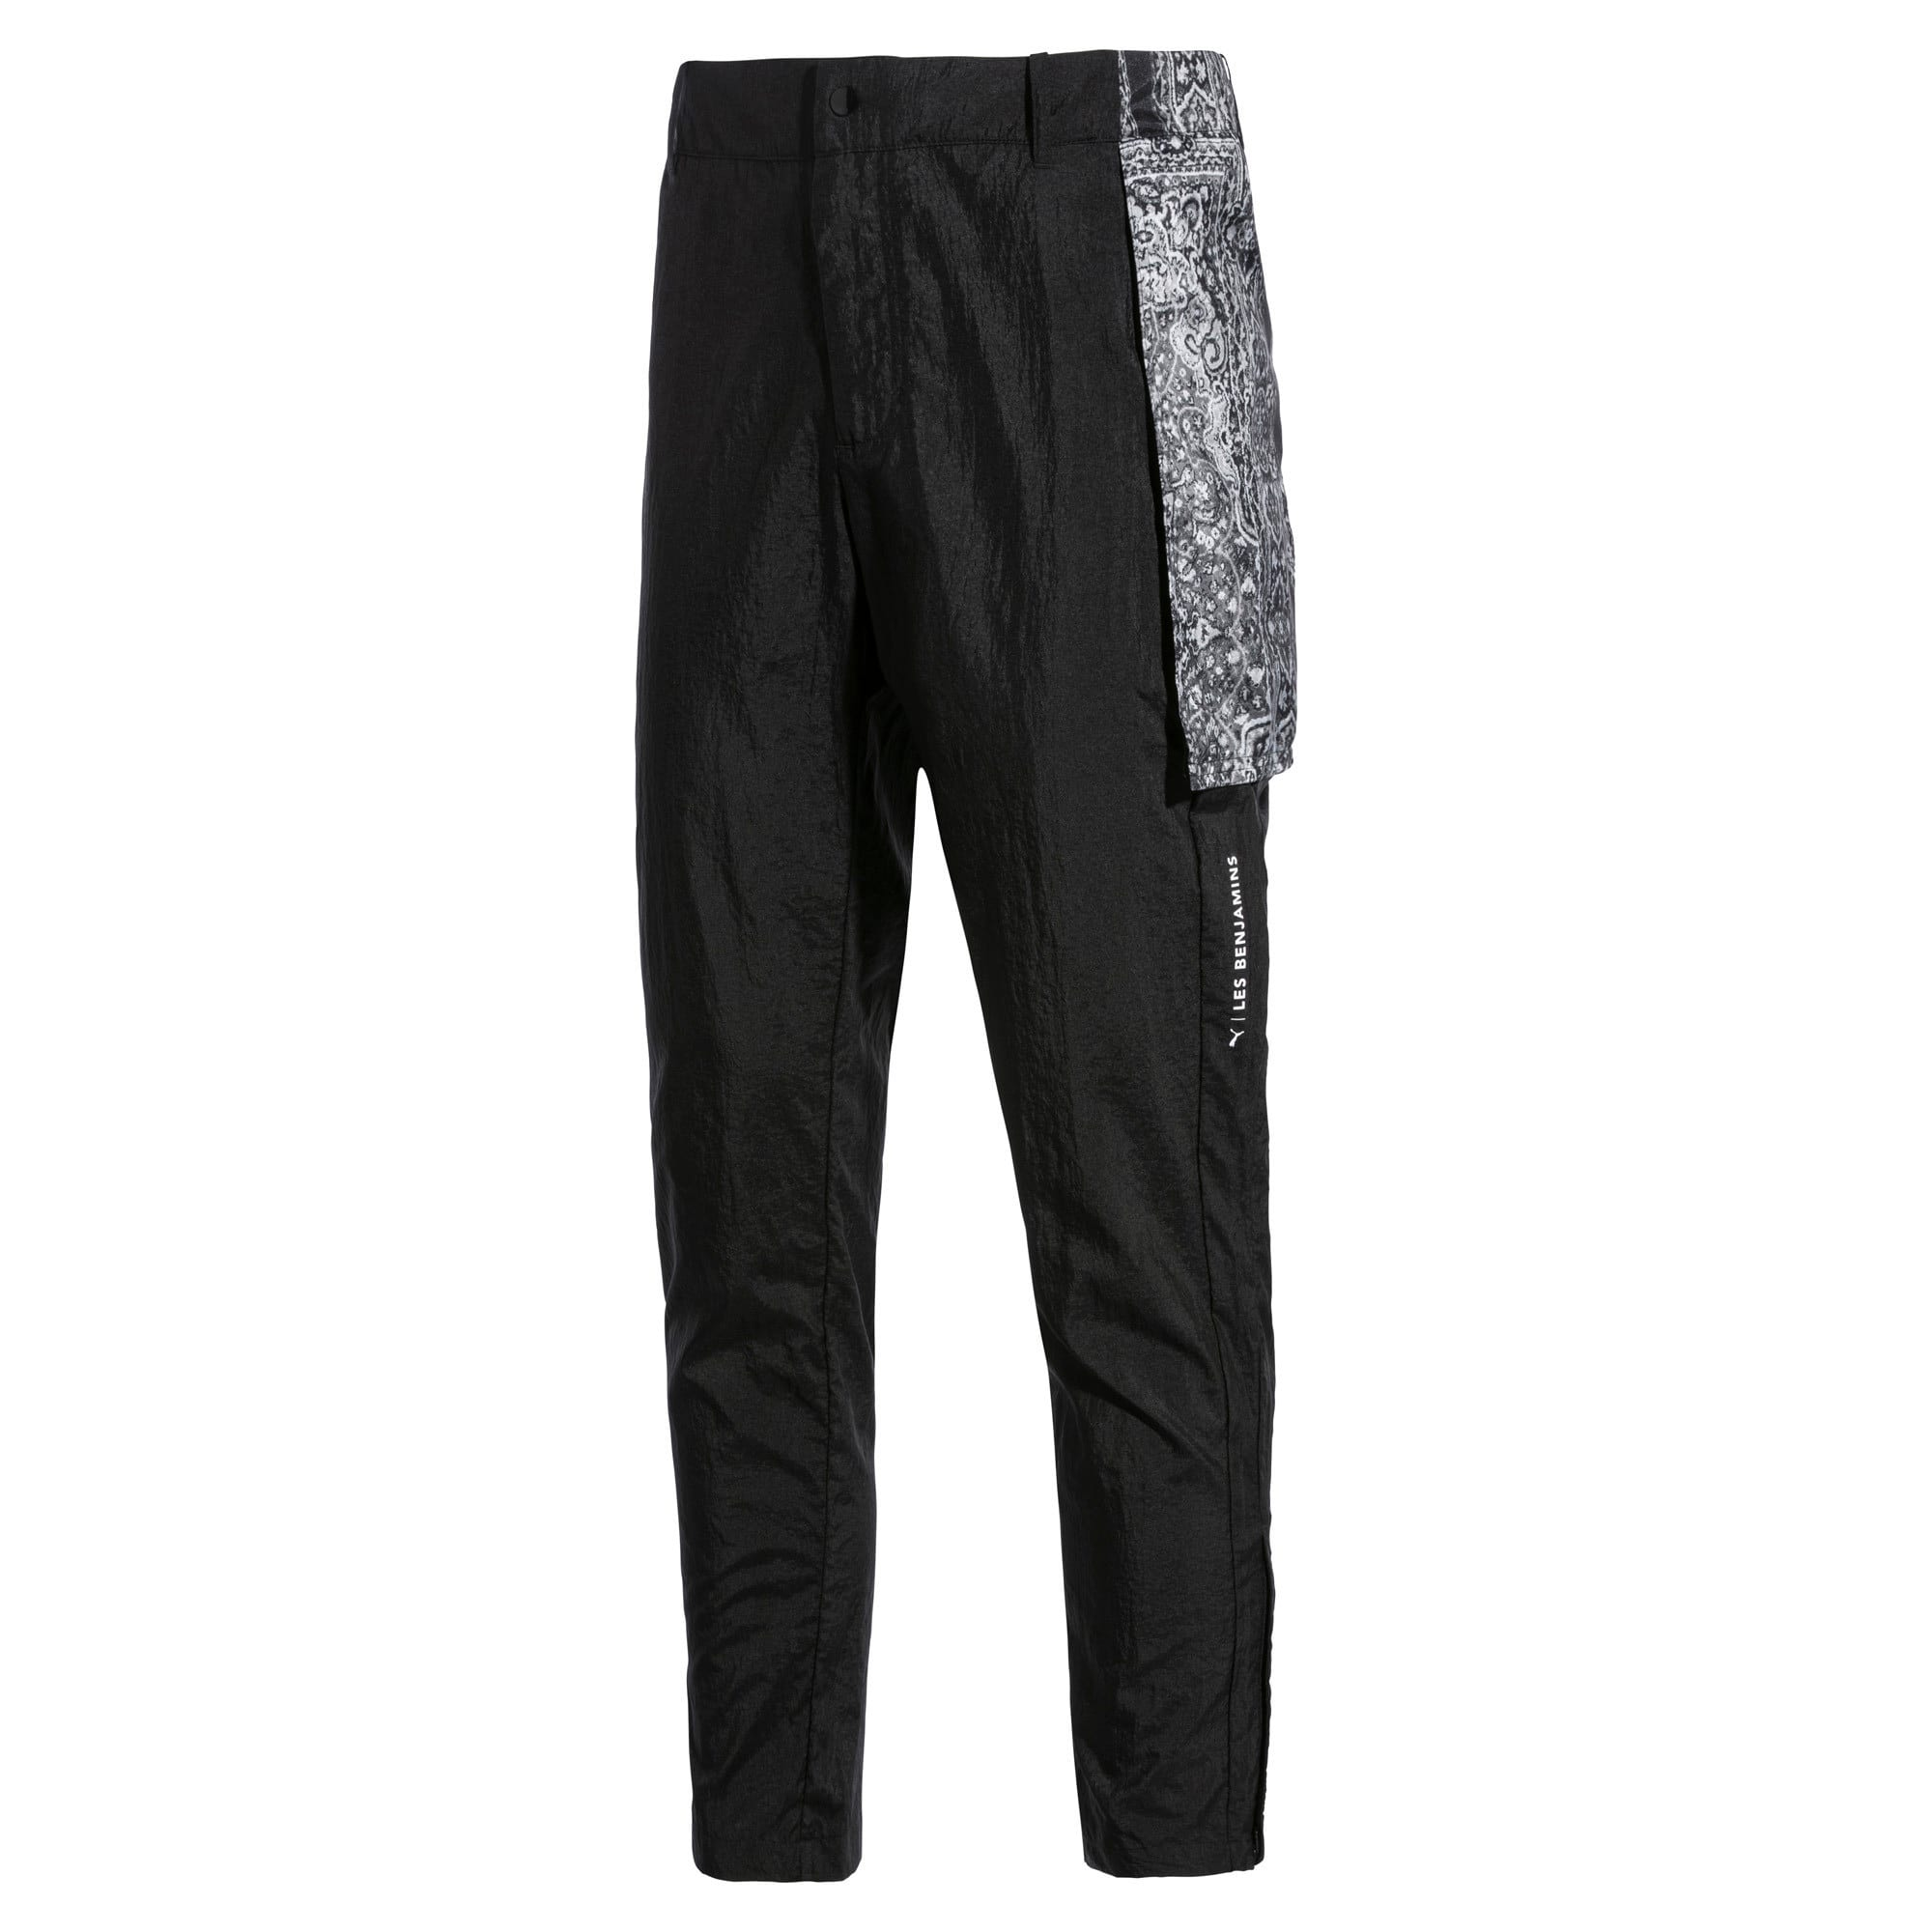 Thumbnail 1 of PUMA x LES BENJAMINS Men's Track Pants, Puma Black, medium